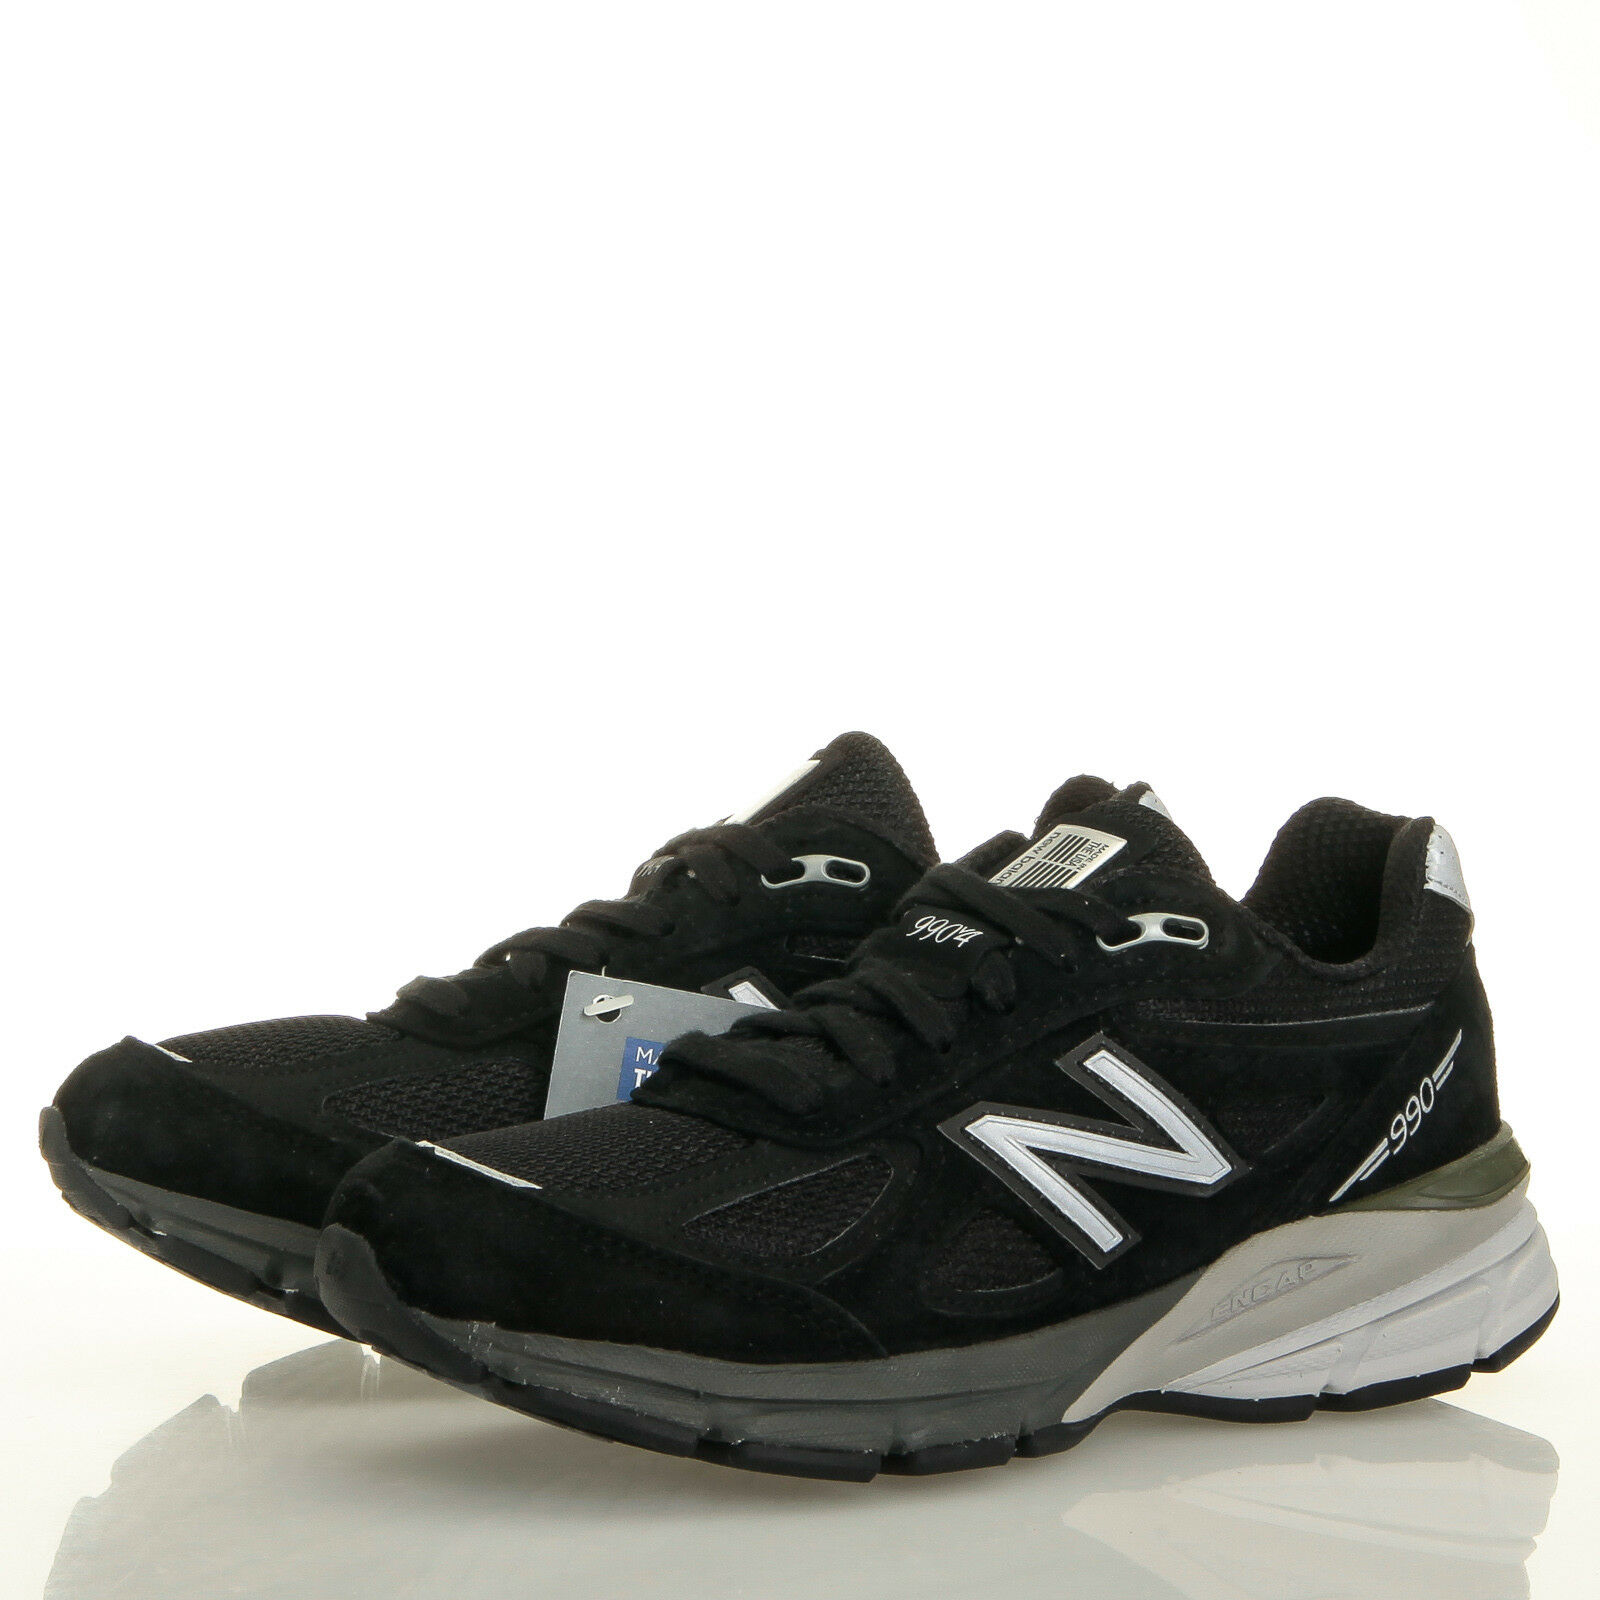 New Balance 990 v4 Women's Black Suede Running shoes - Size 5 B